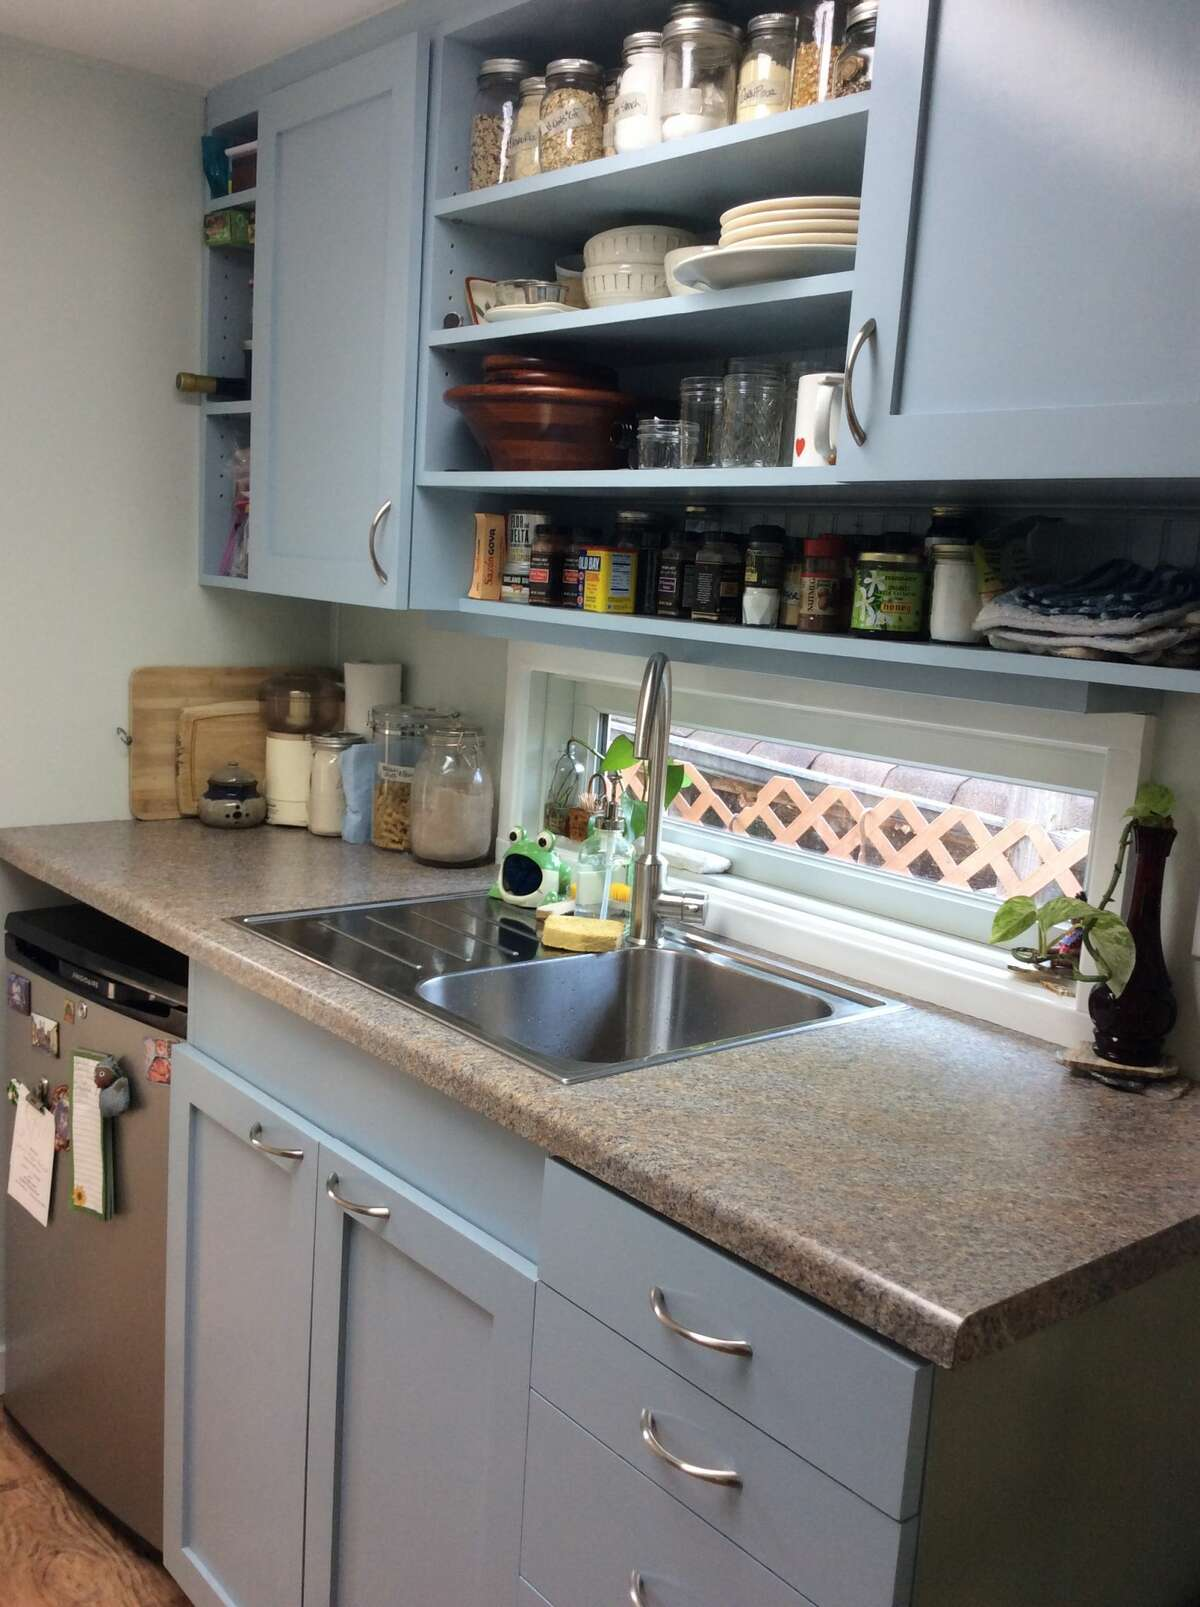 The kitchen does have some counter space and a dishwasher, plus...